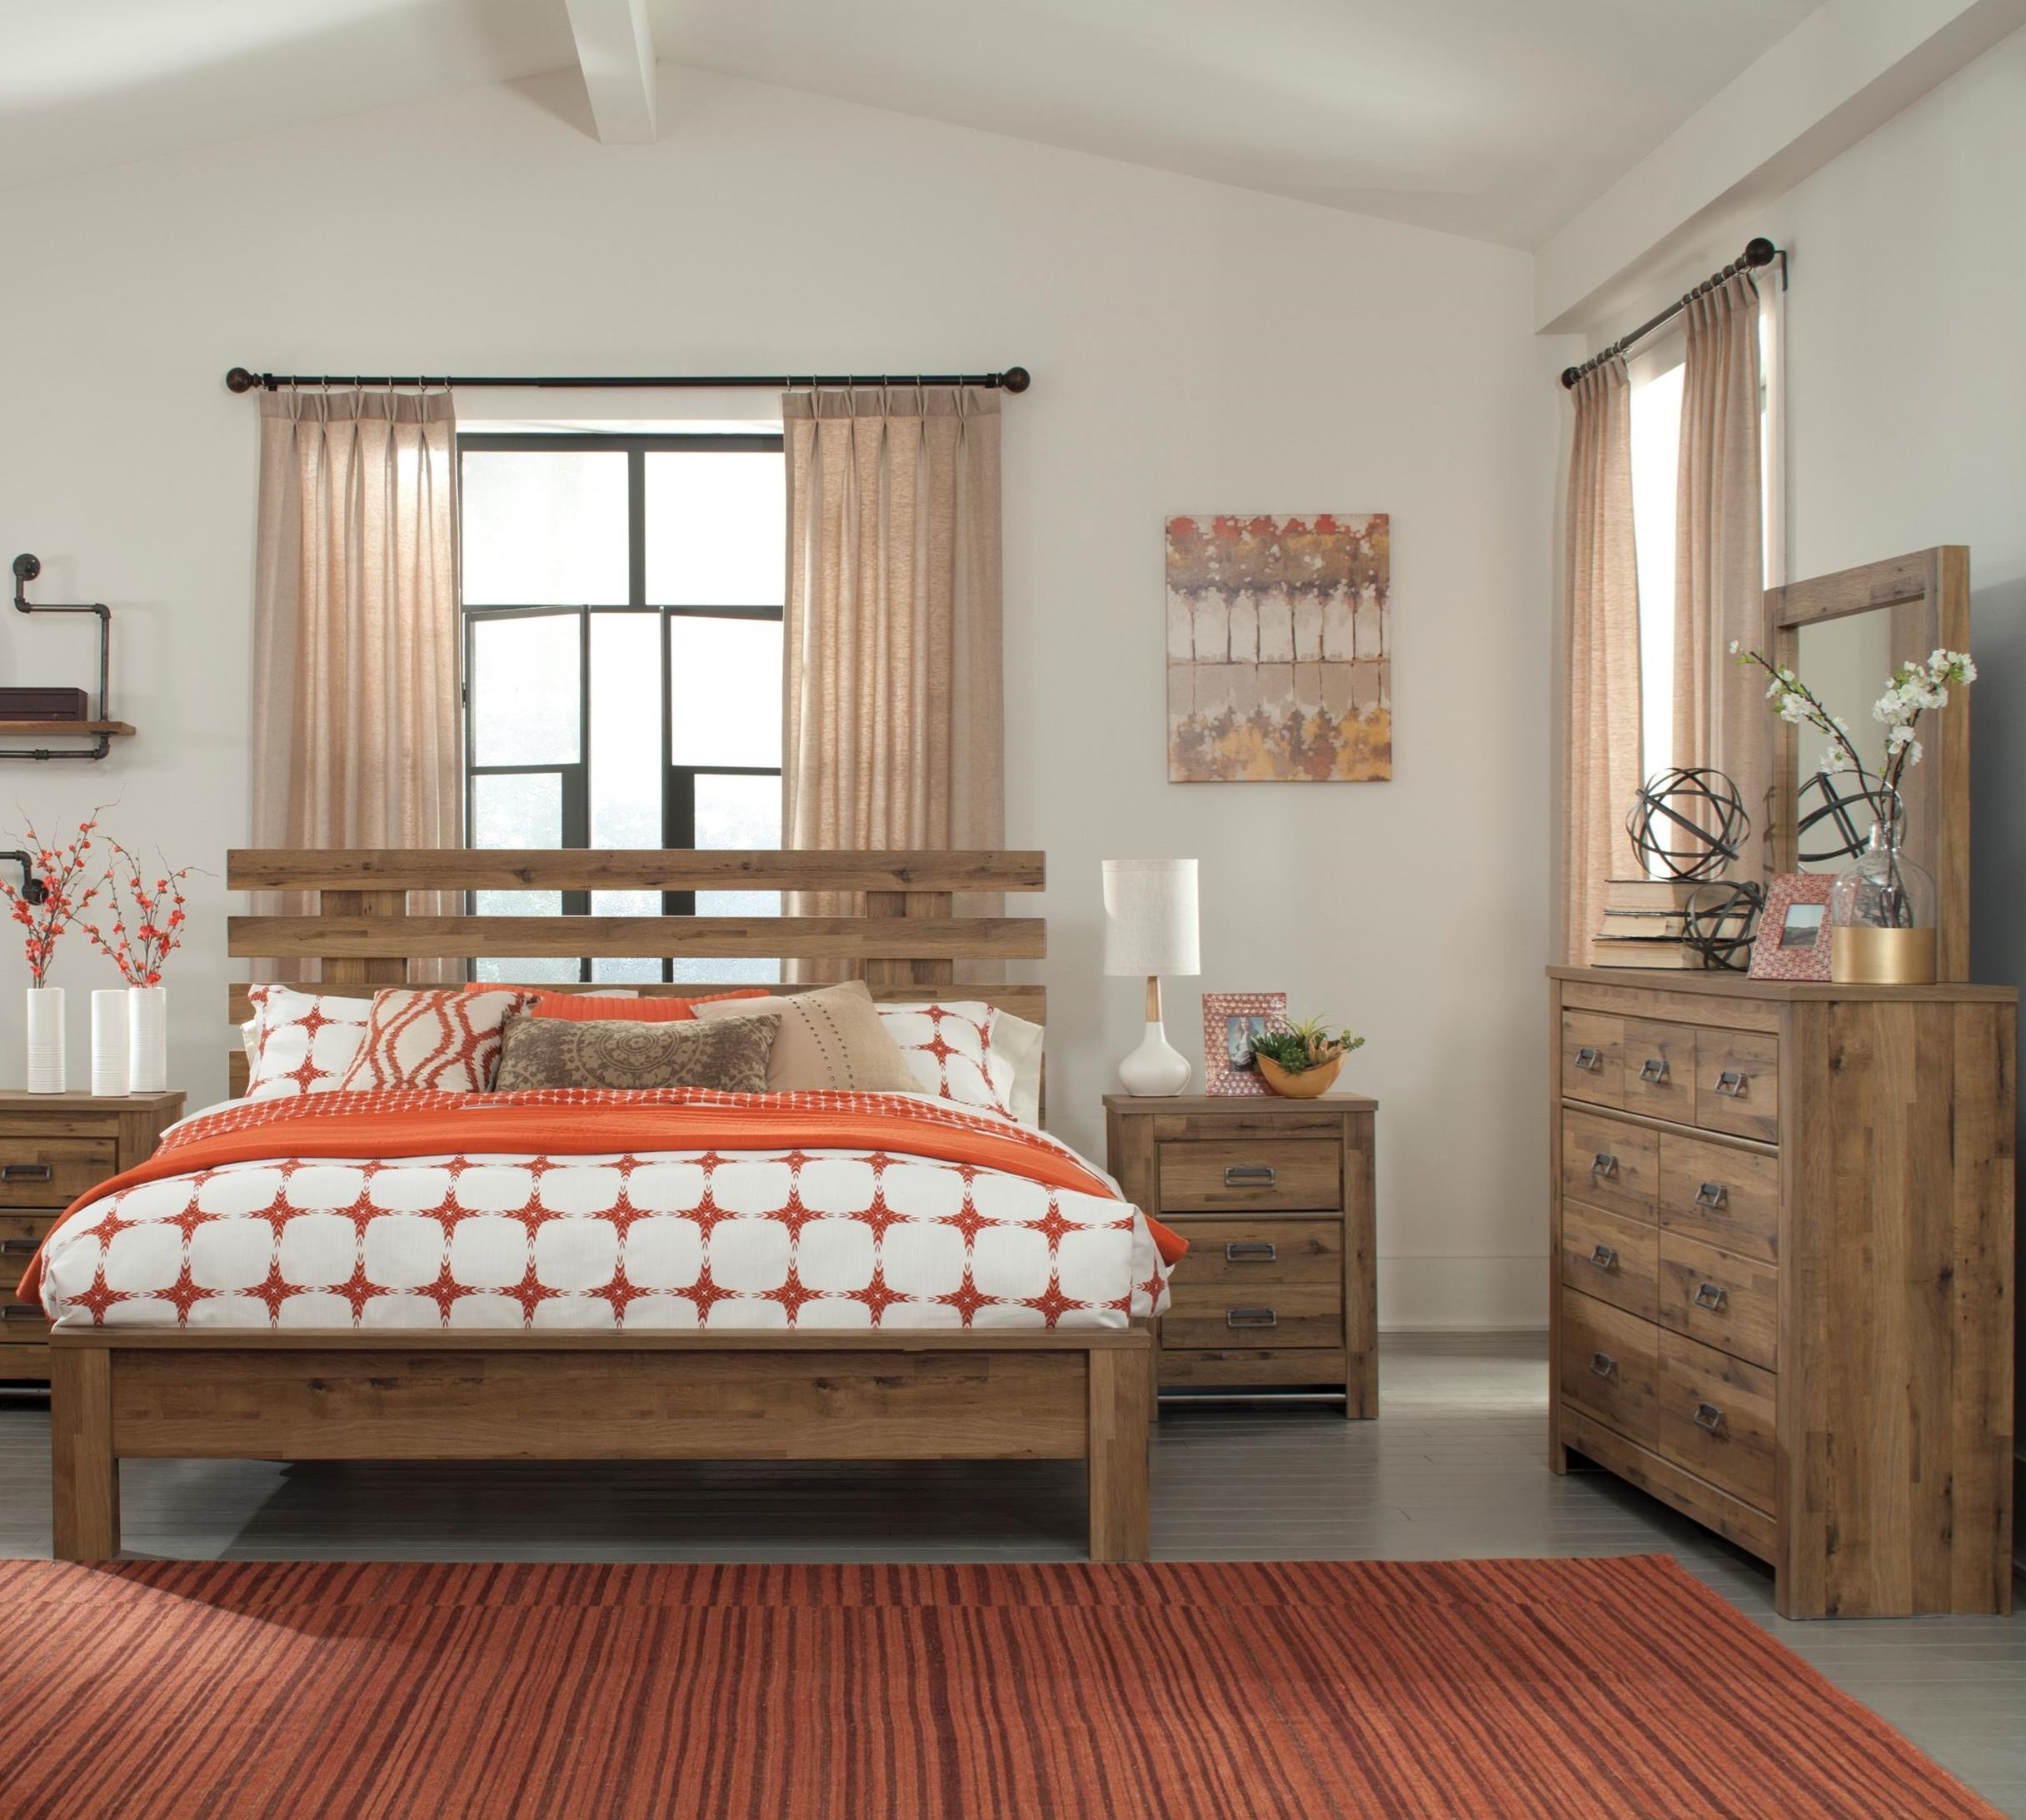 Signature Design by Ashley Cinrey King Bedroom Group - Item Number: B369 K Bedroom Group 4